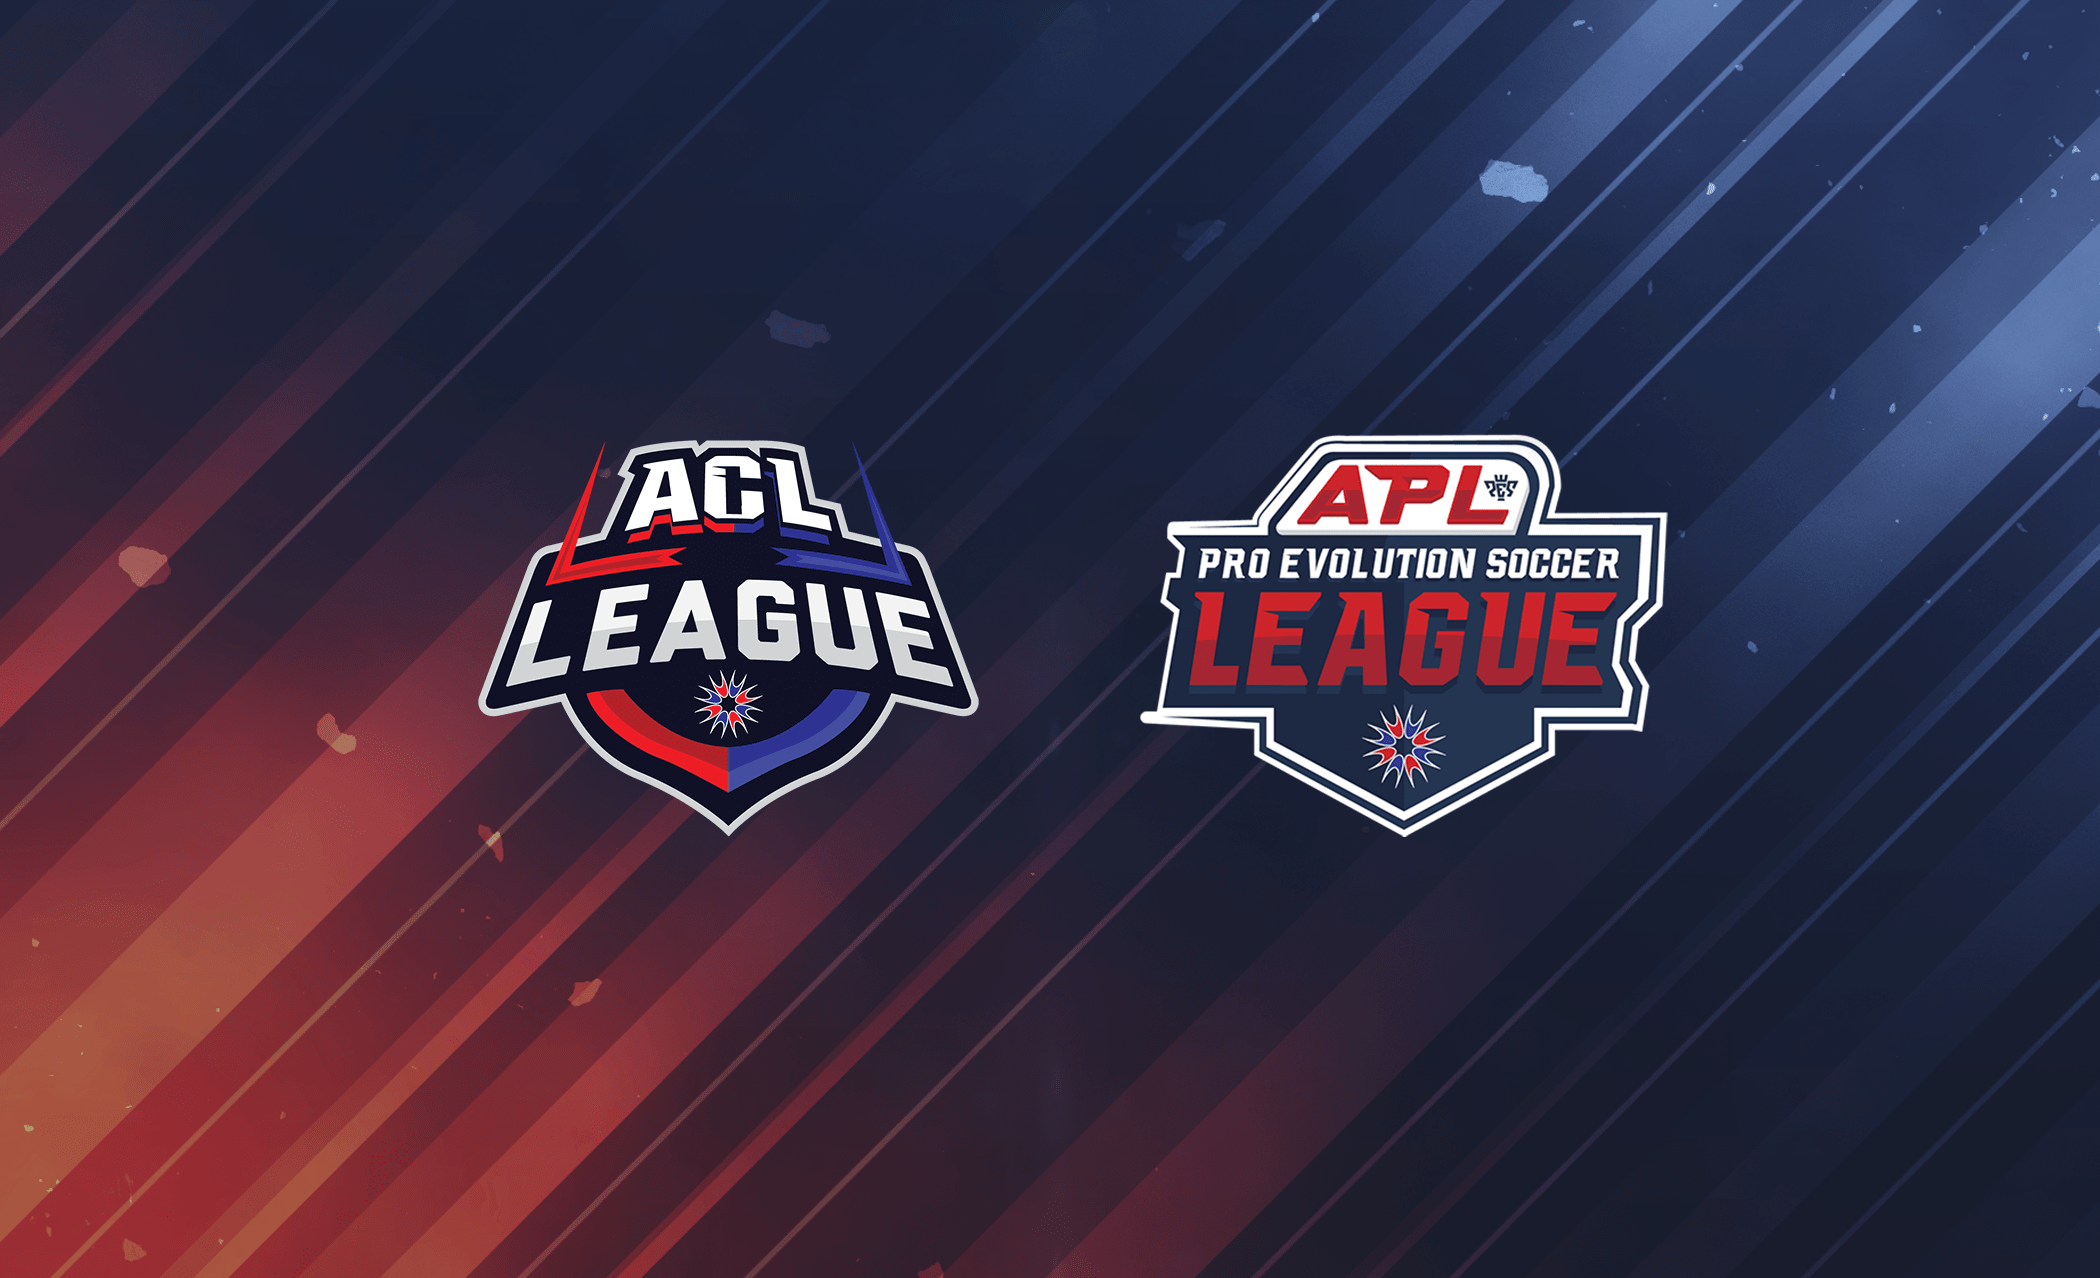 Introducing ACL & APL League by AxisEsports